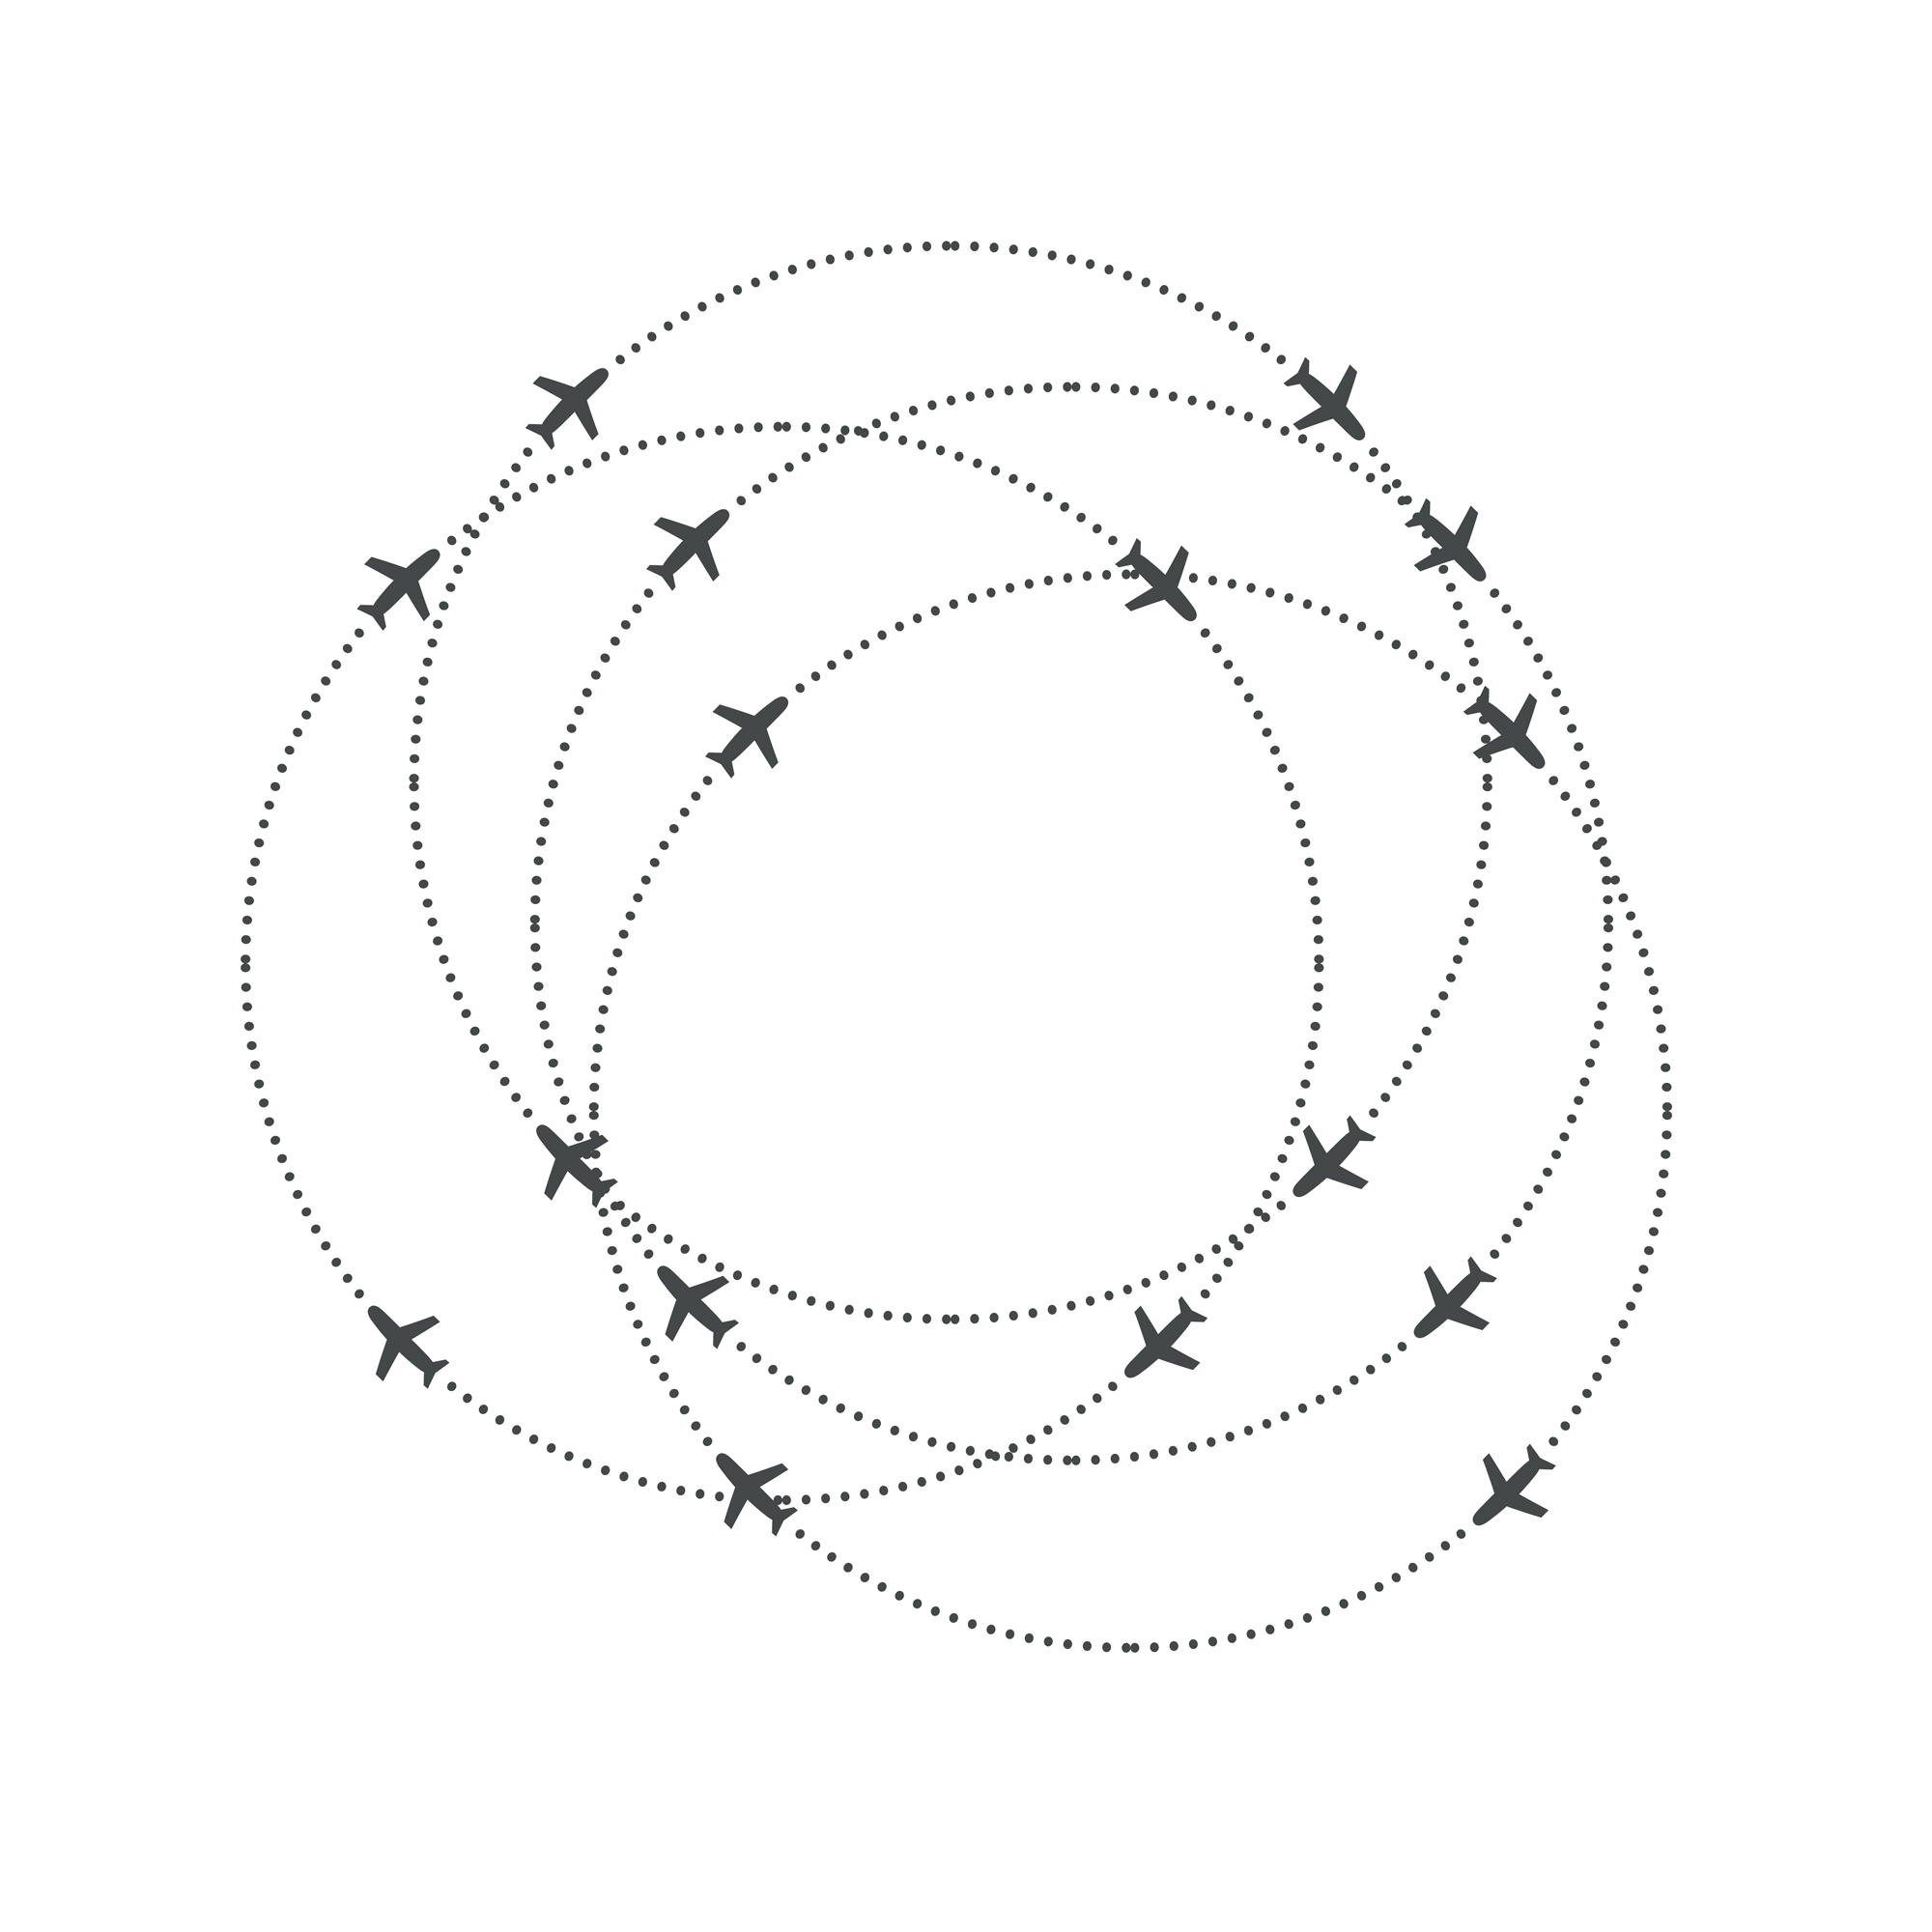 fly circle to land approaches more safely